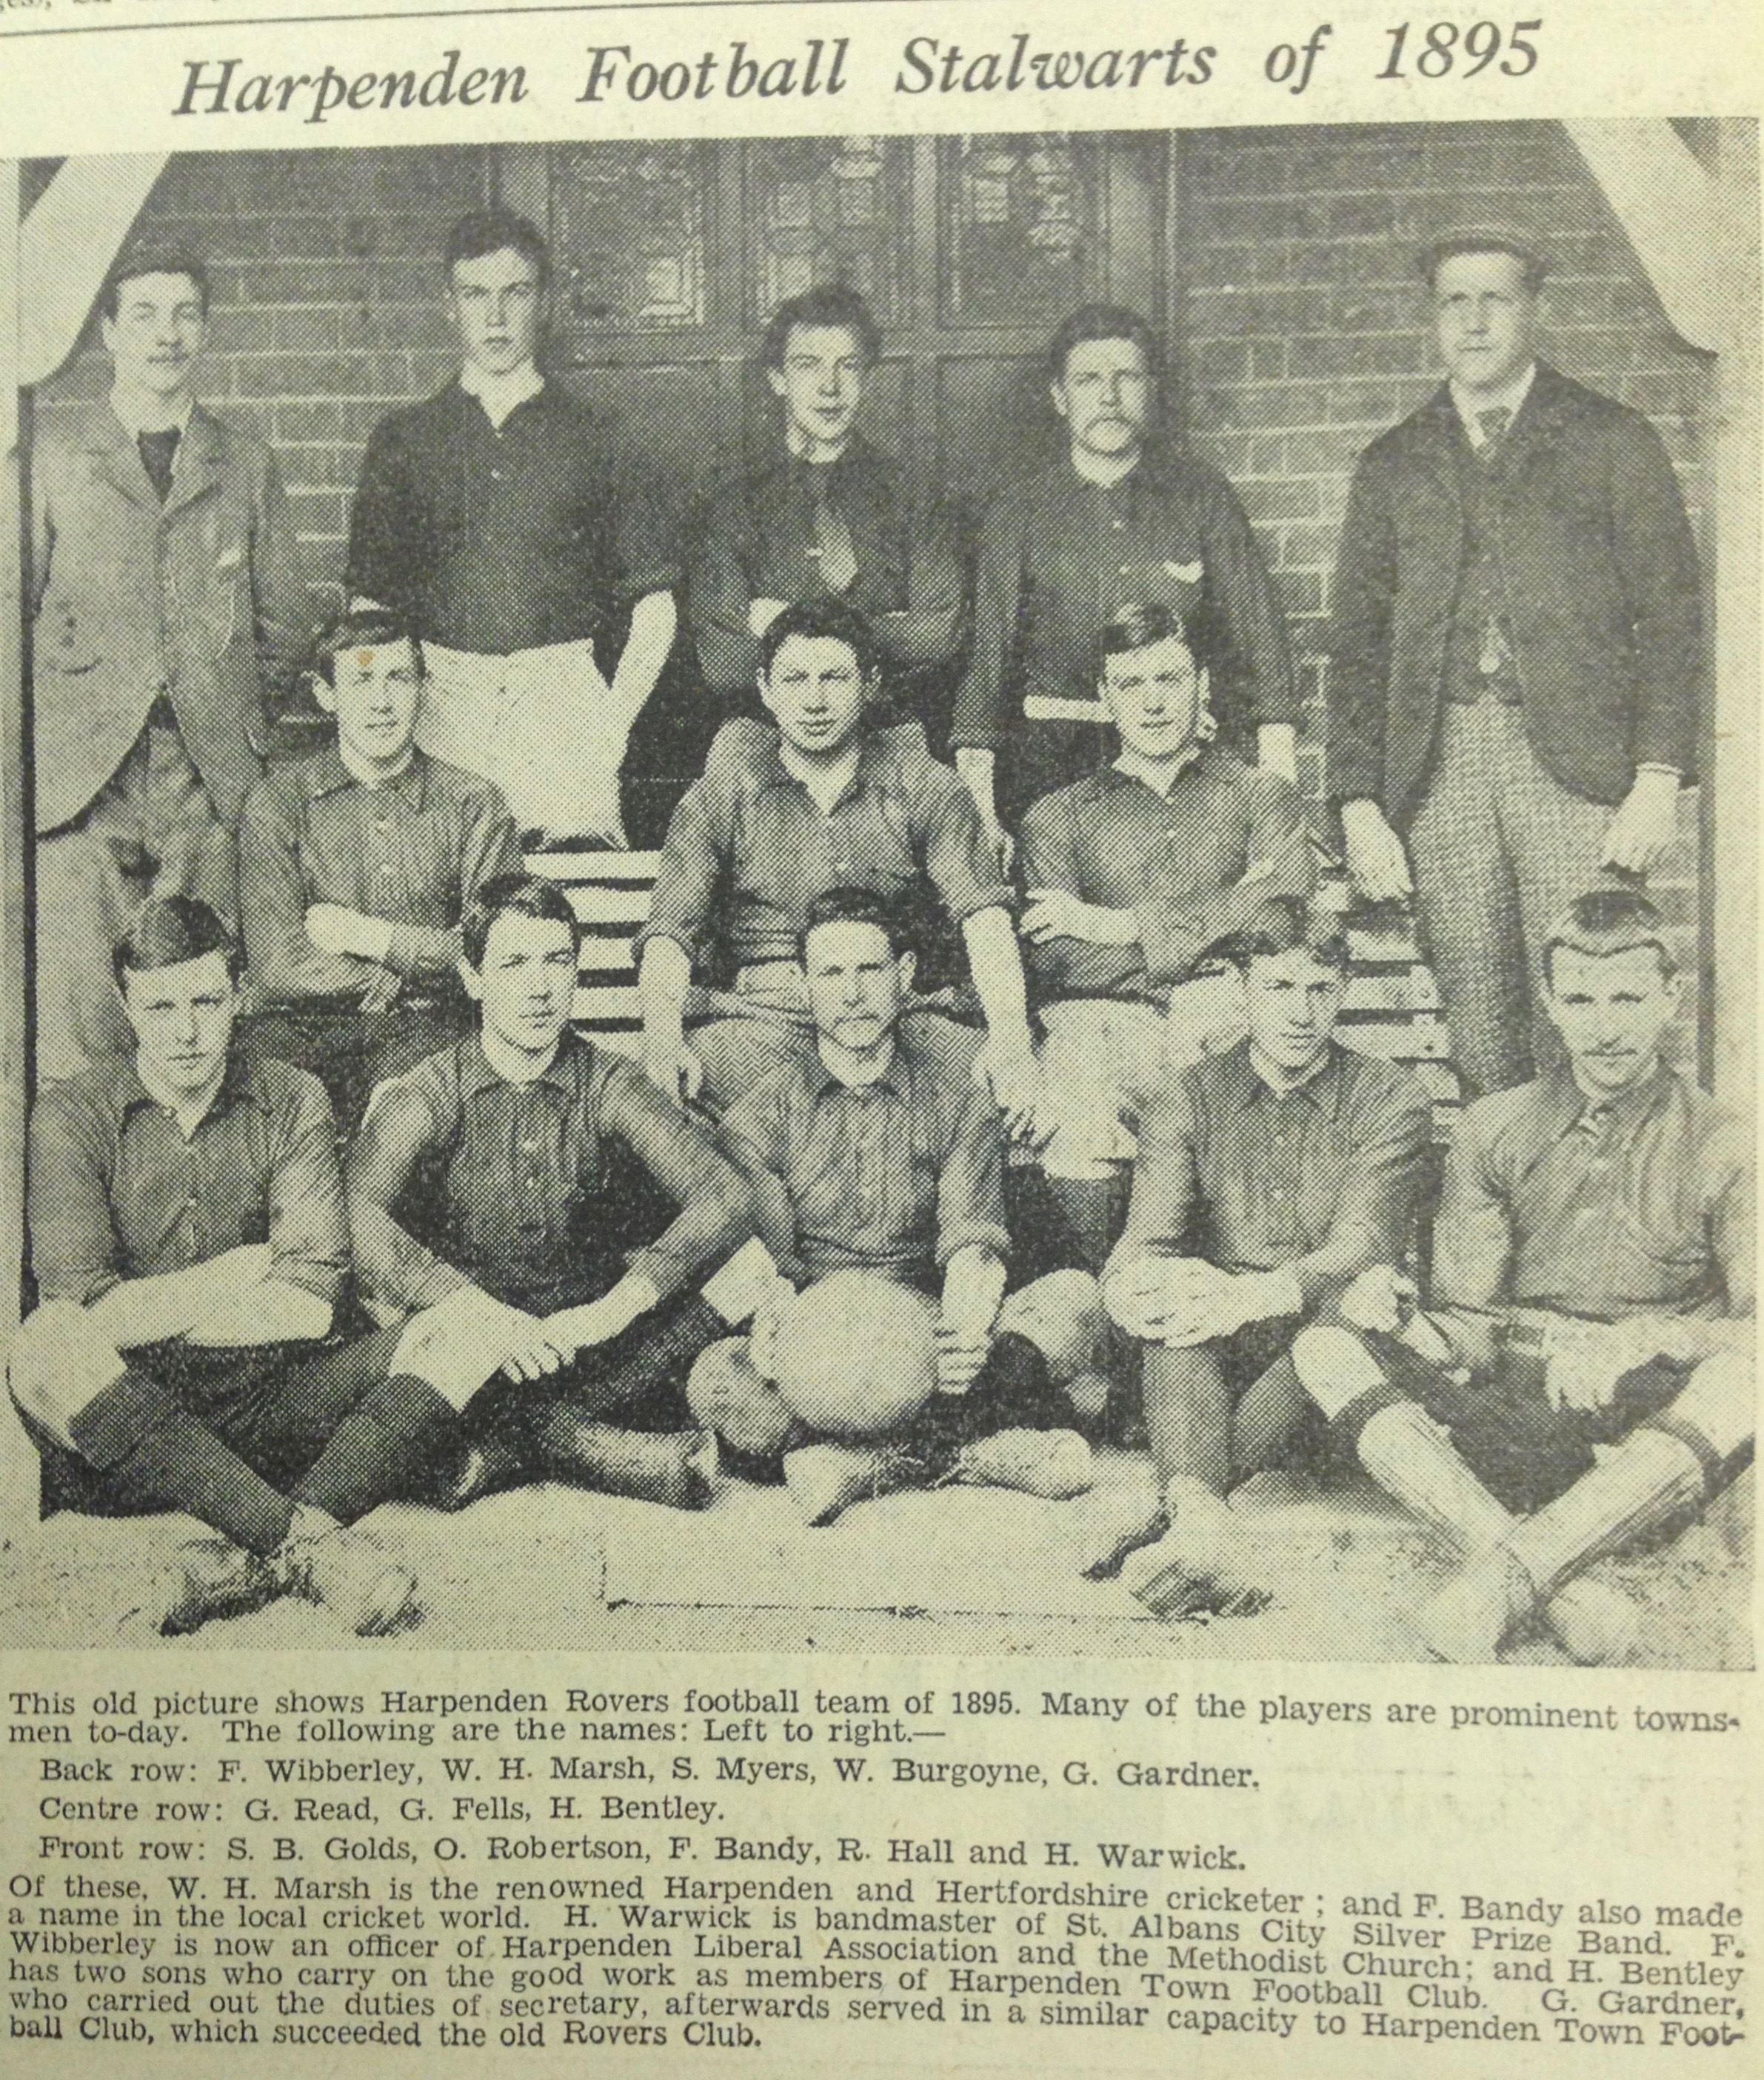 Harpenden Rovers 1895